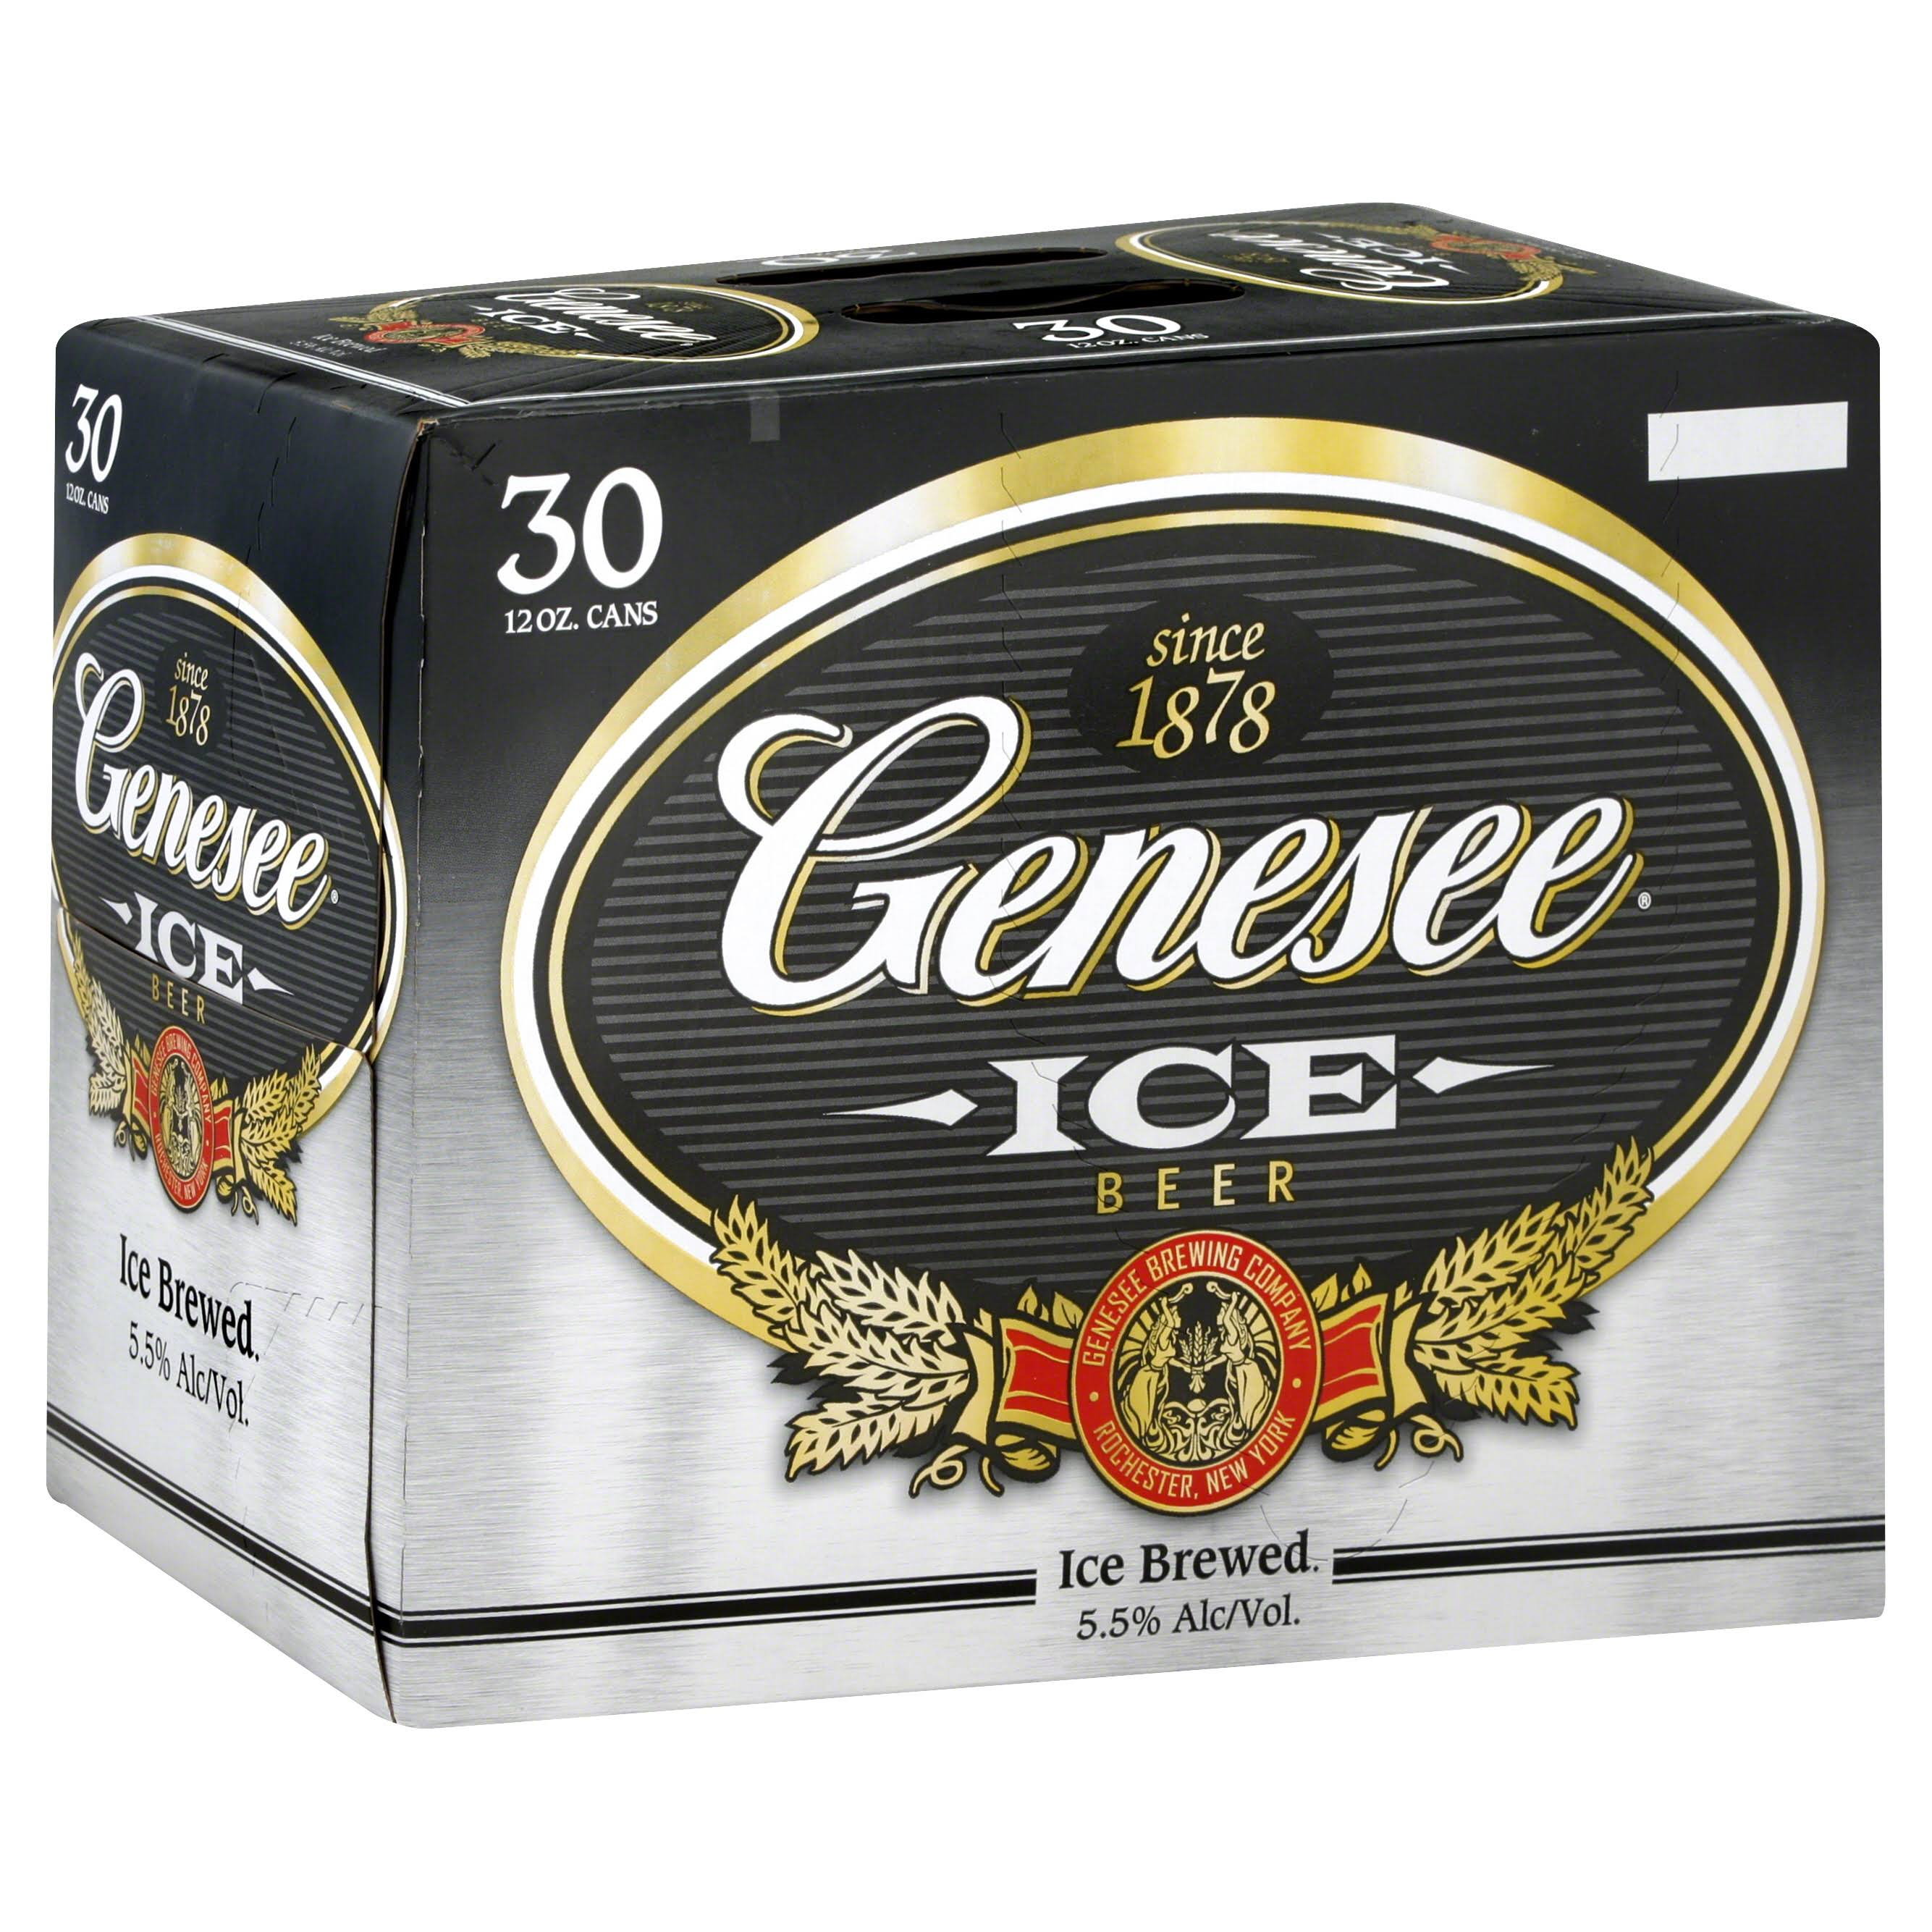 Genesee Ice Beer - 12oz